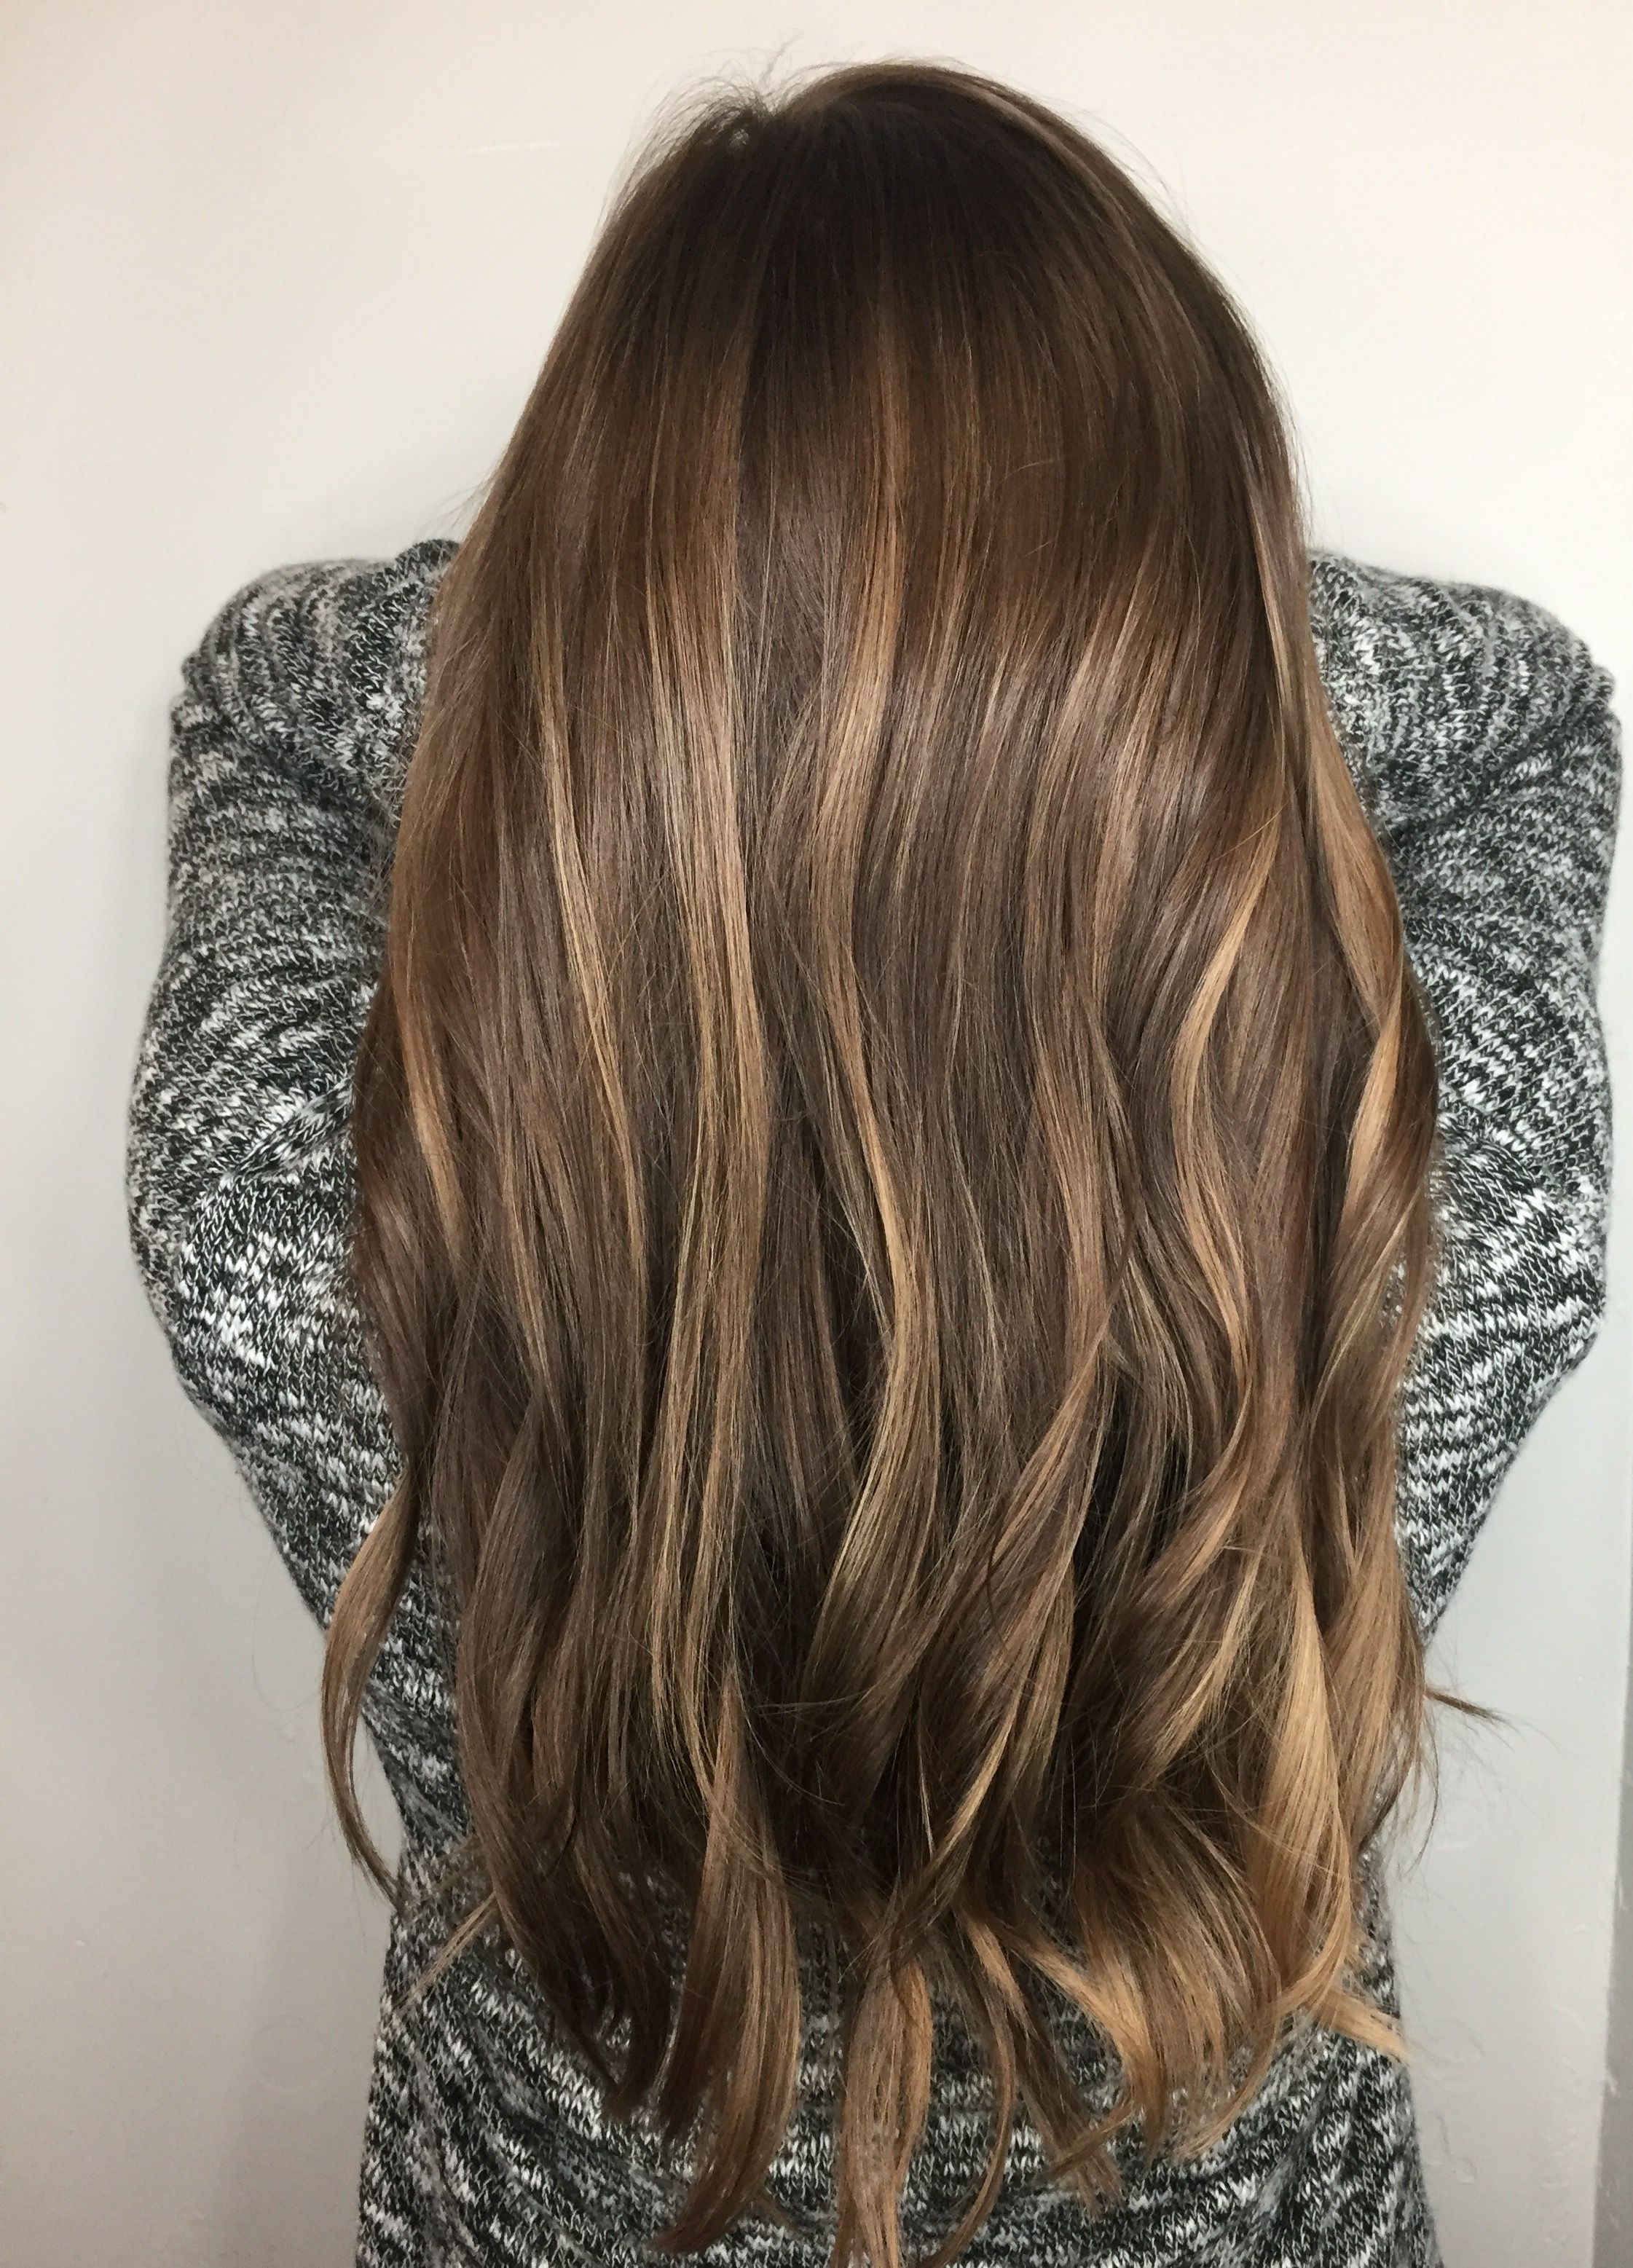 Reverse Balayage Blonde to Brunette Blended Sunkissed Hair